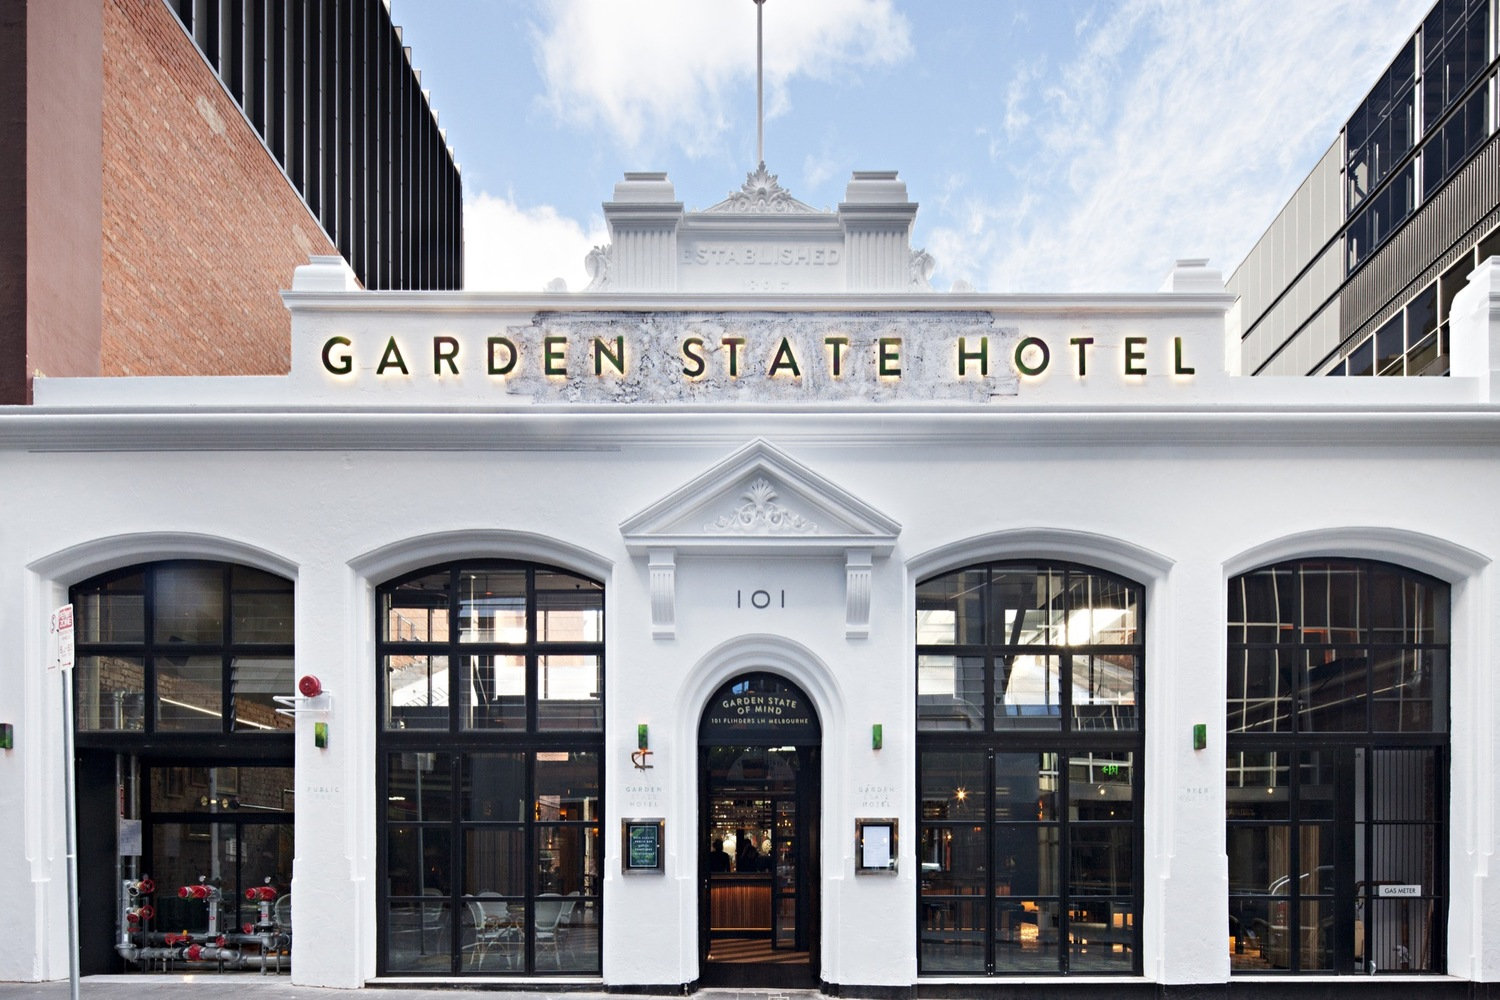 The City Oasis in the Garden State Hotel, Melbourne